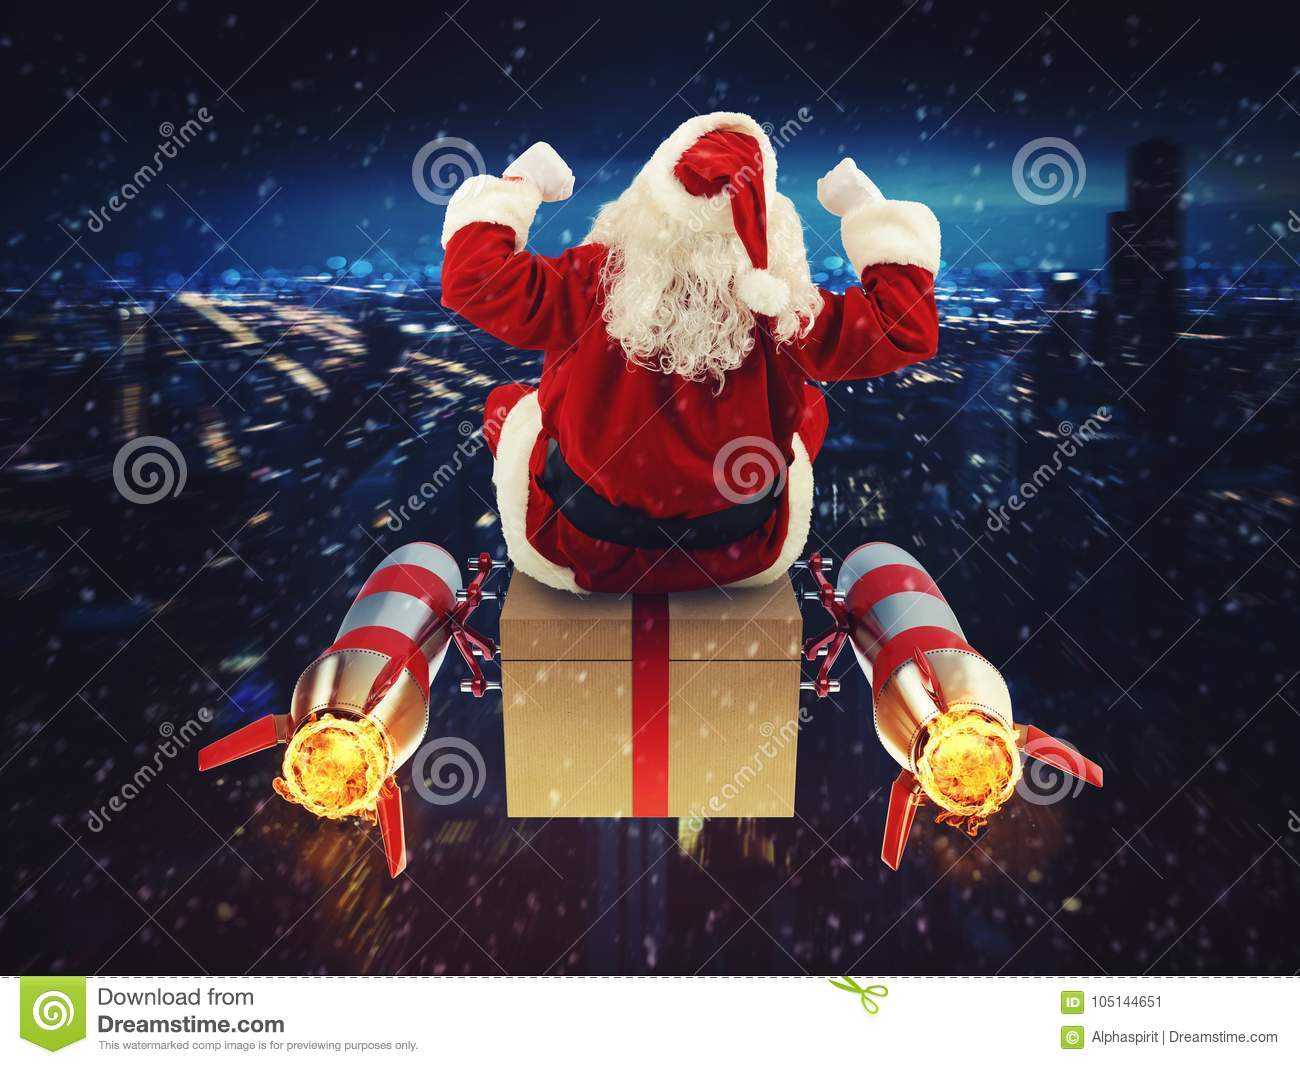 Fast Delivery Of Christmas Gifts Stock Image - Image of fast ...